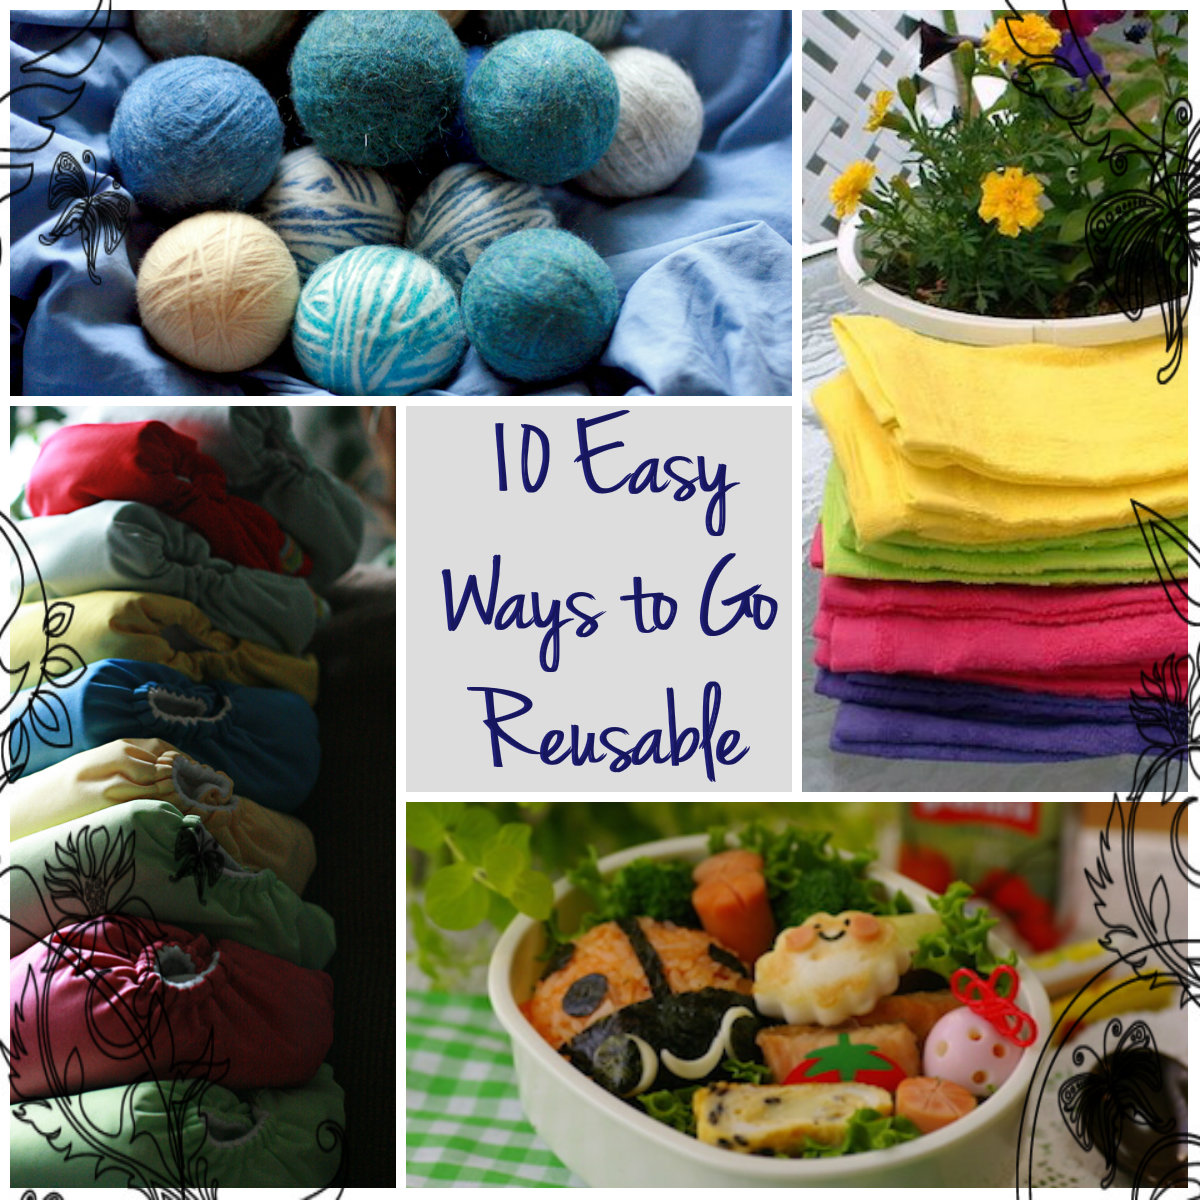 Natural Parents Network: 10 Easy Ways to Go Reusable at Home